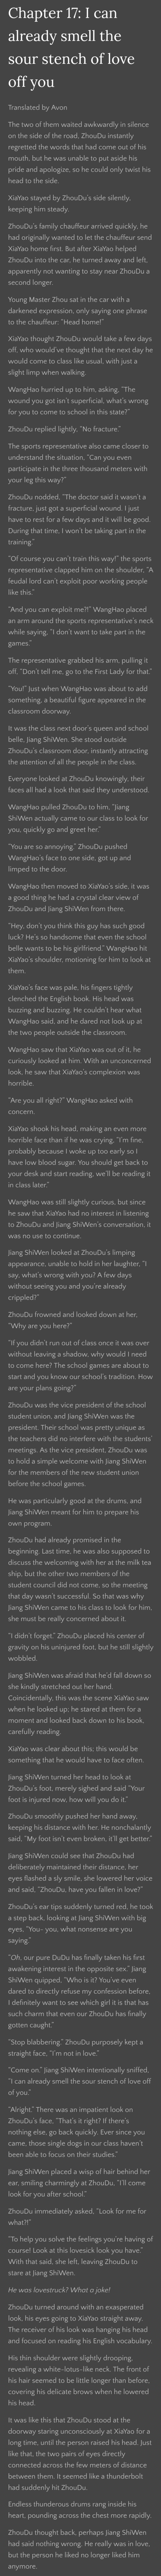 MW(R) Chapter 17